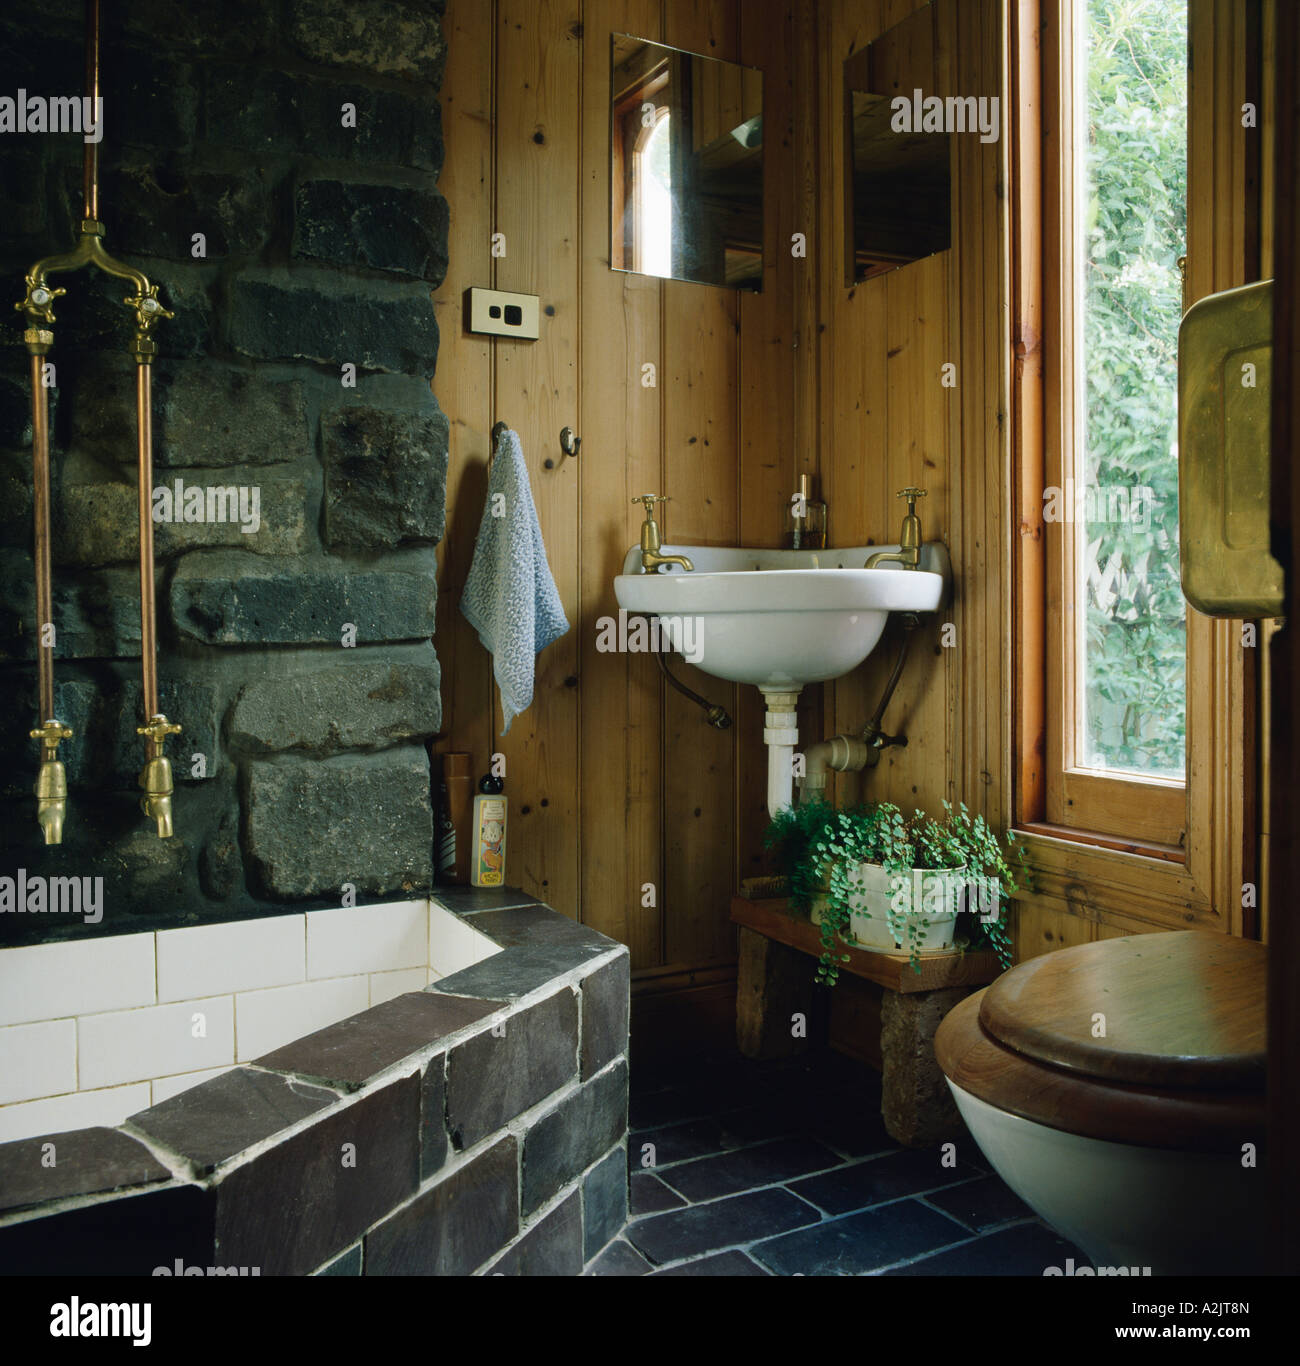 Corner basin in bathroom with wooden walls and black tiled bath ...